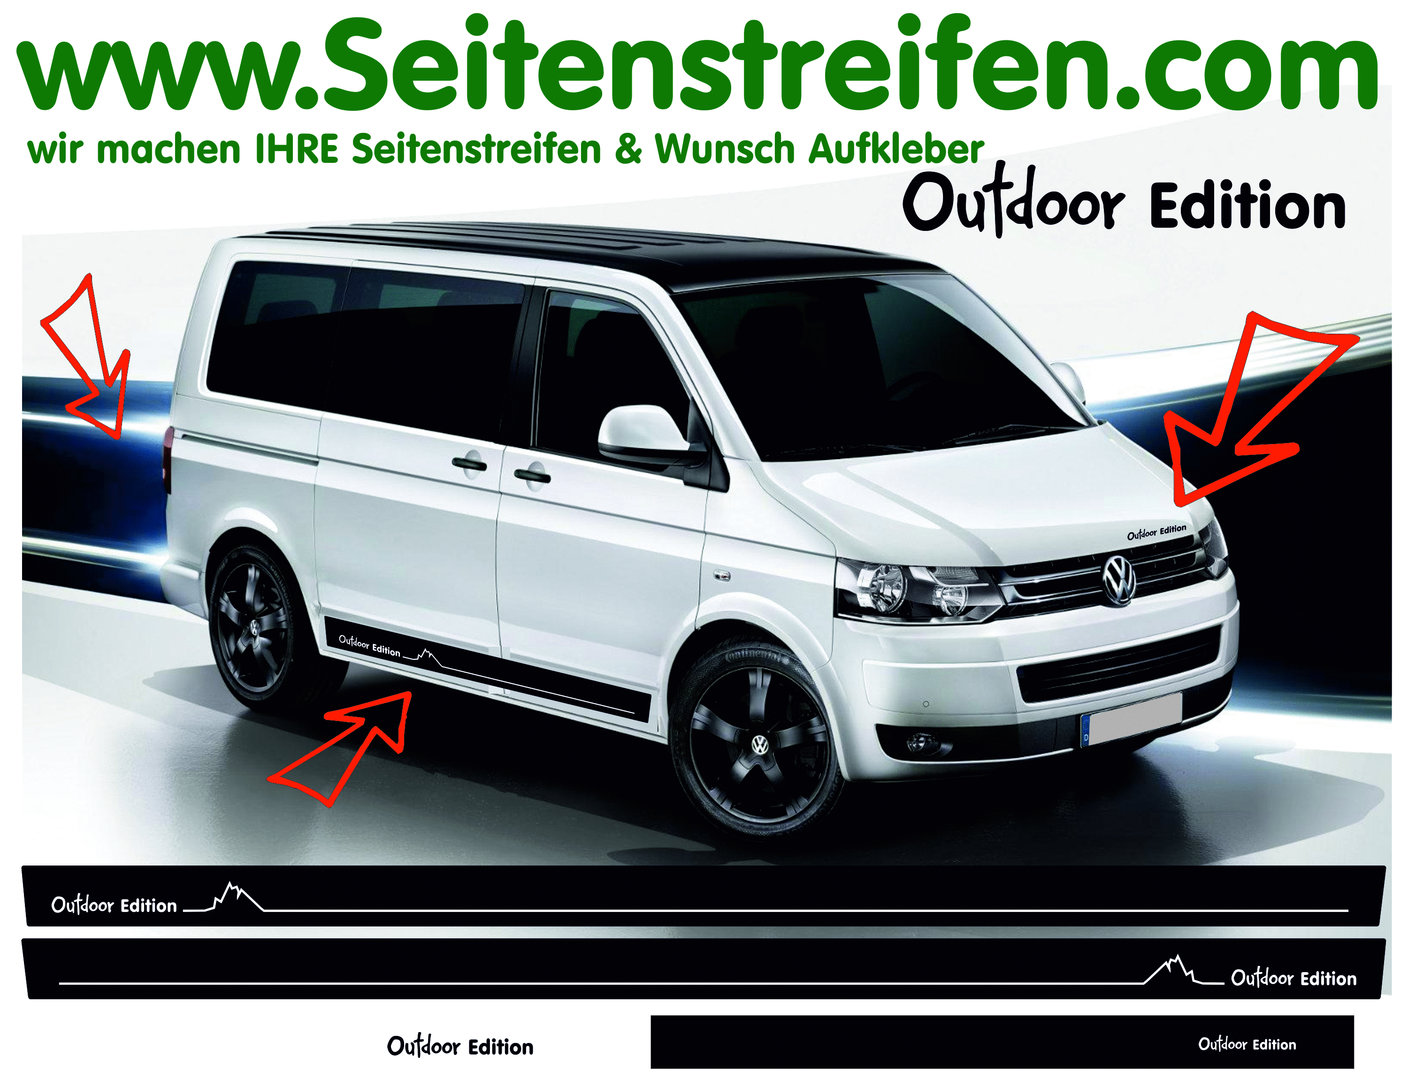 Vw bus t4 t5 outdoor edition side stripes decal sticker decor set n 2549